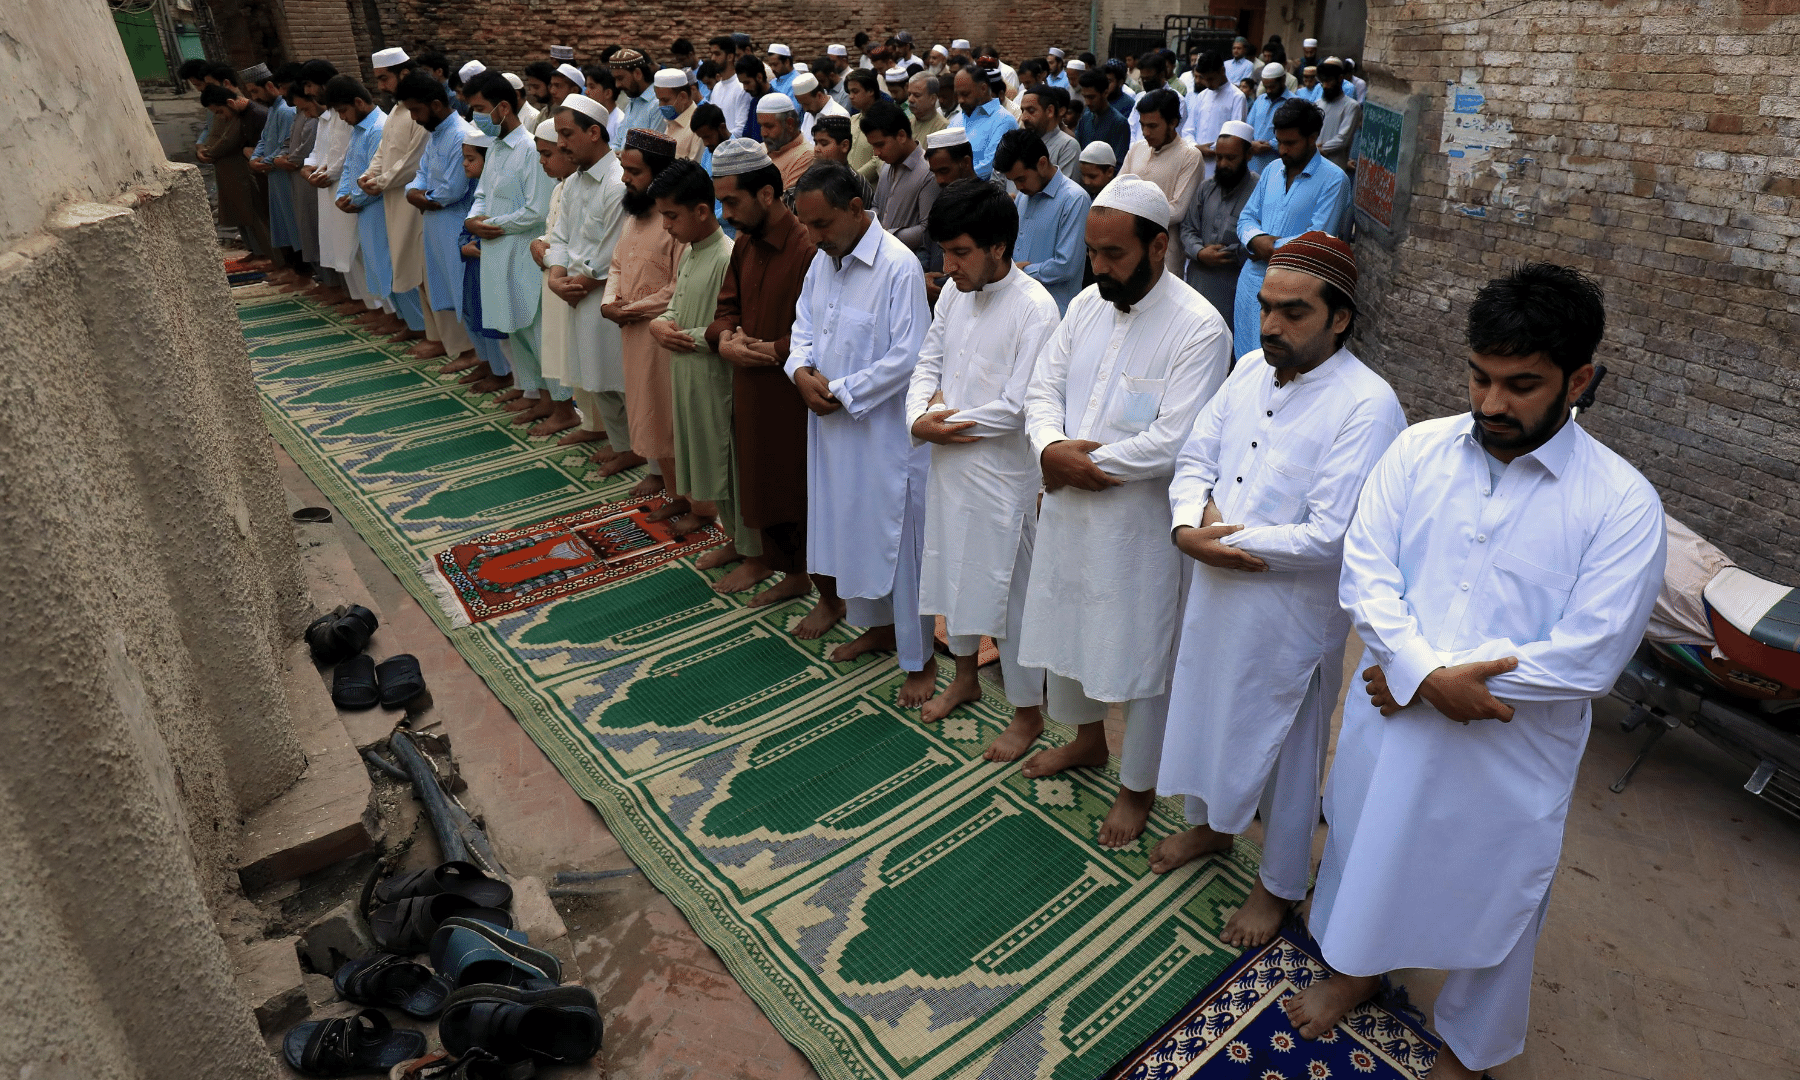 Muslims attend prayers at a street during celebration of Eidul Azha in Peshawar. — Reuters